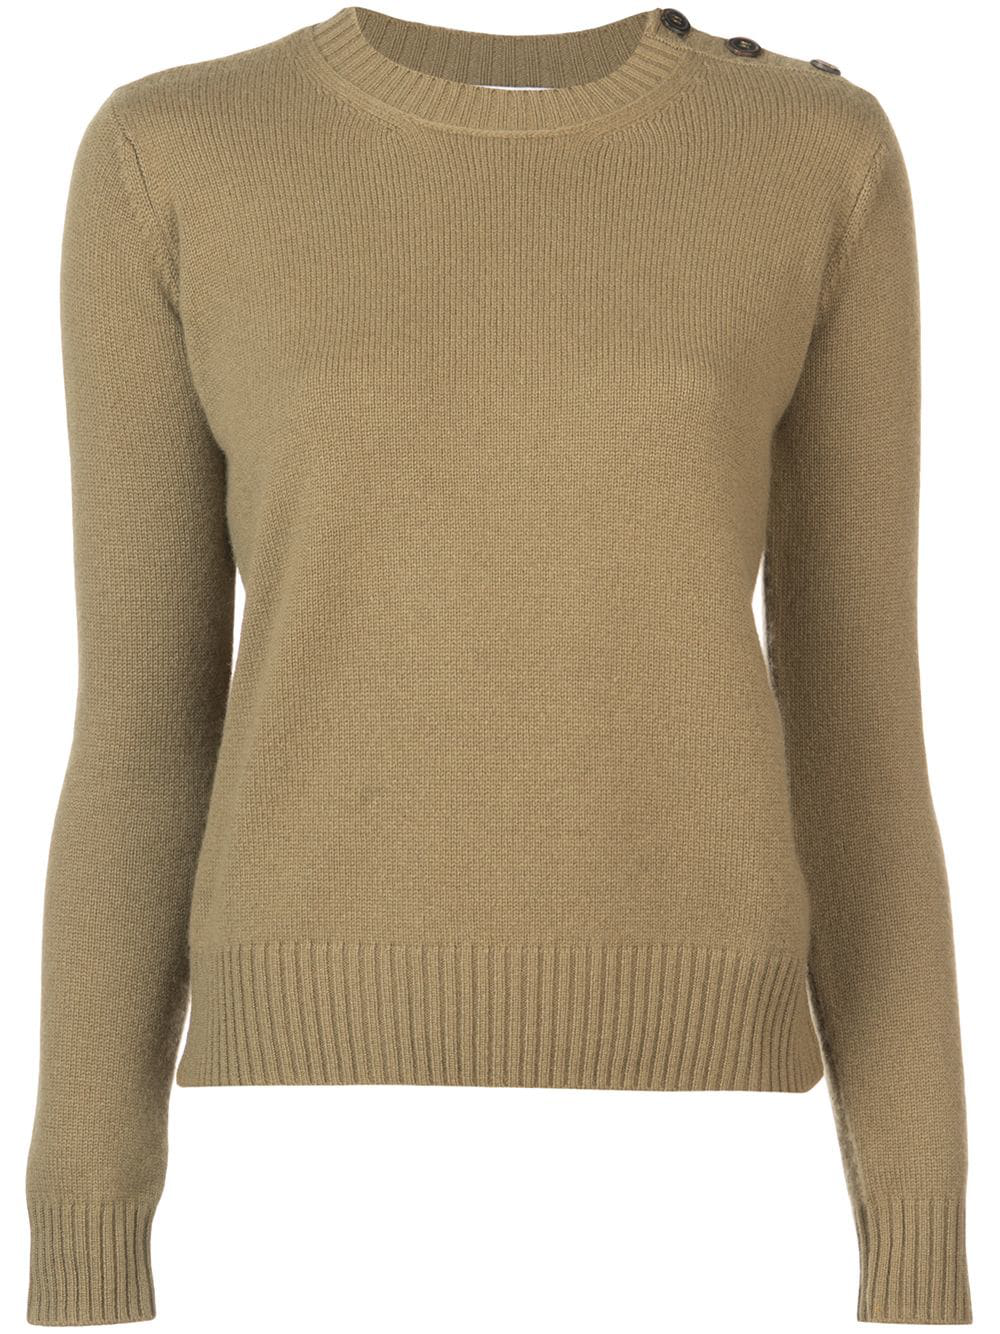 cc7200da5ff2d4 Chocolate brown cashmere buttoned shoulder knitted jumper from Alexandra  Golovanoff featuring a ribbed crew neck